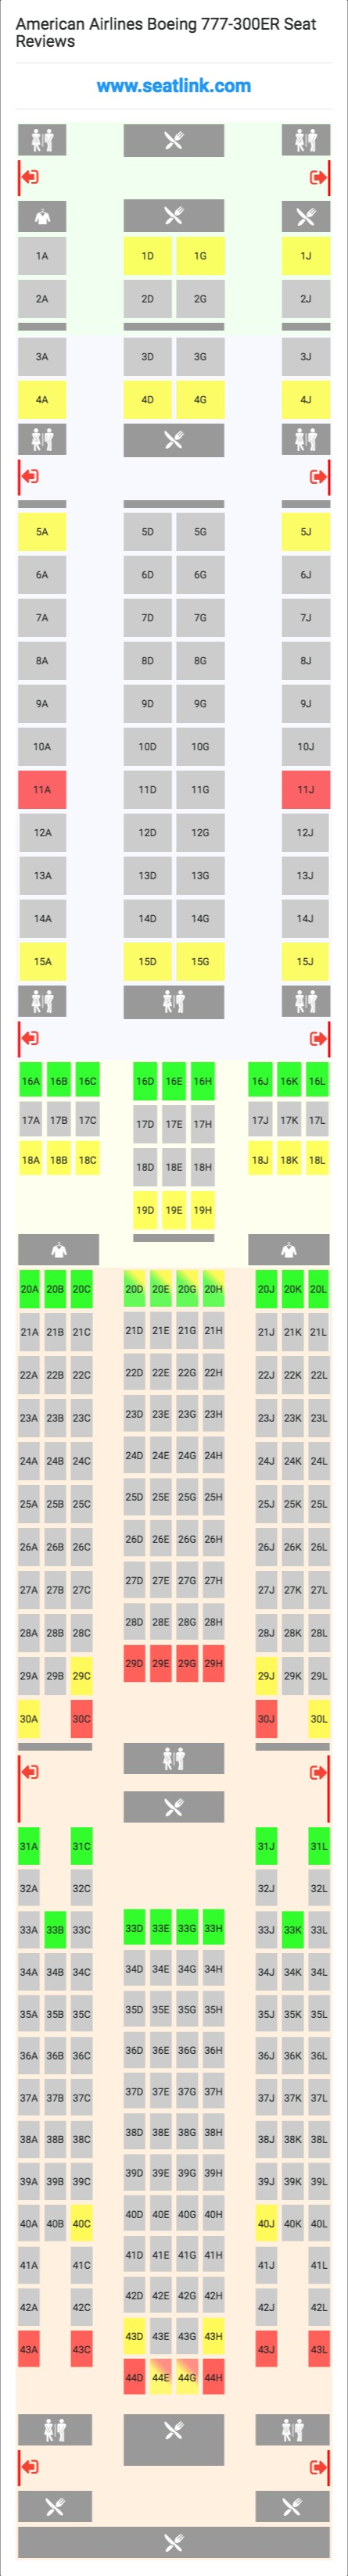 American Airlines Boeing 777 300er 77w Seat Map Delta Airlines